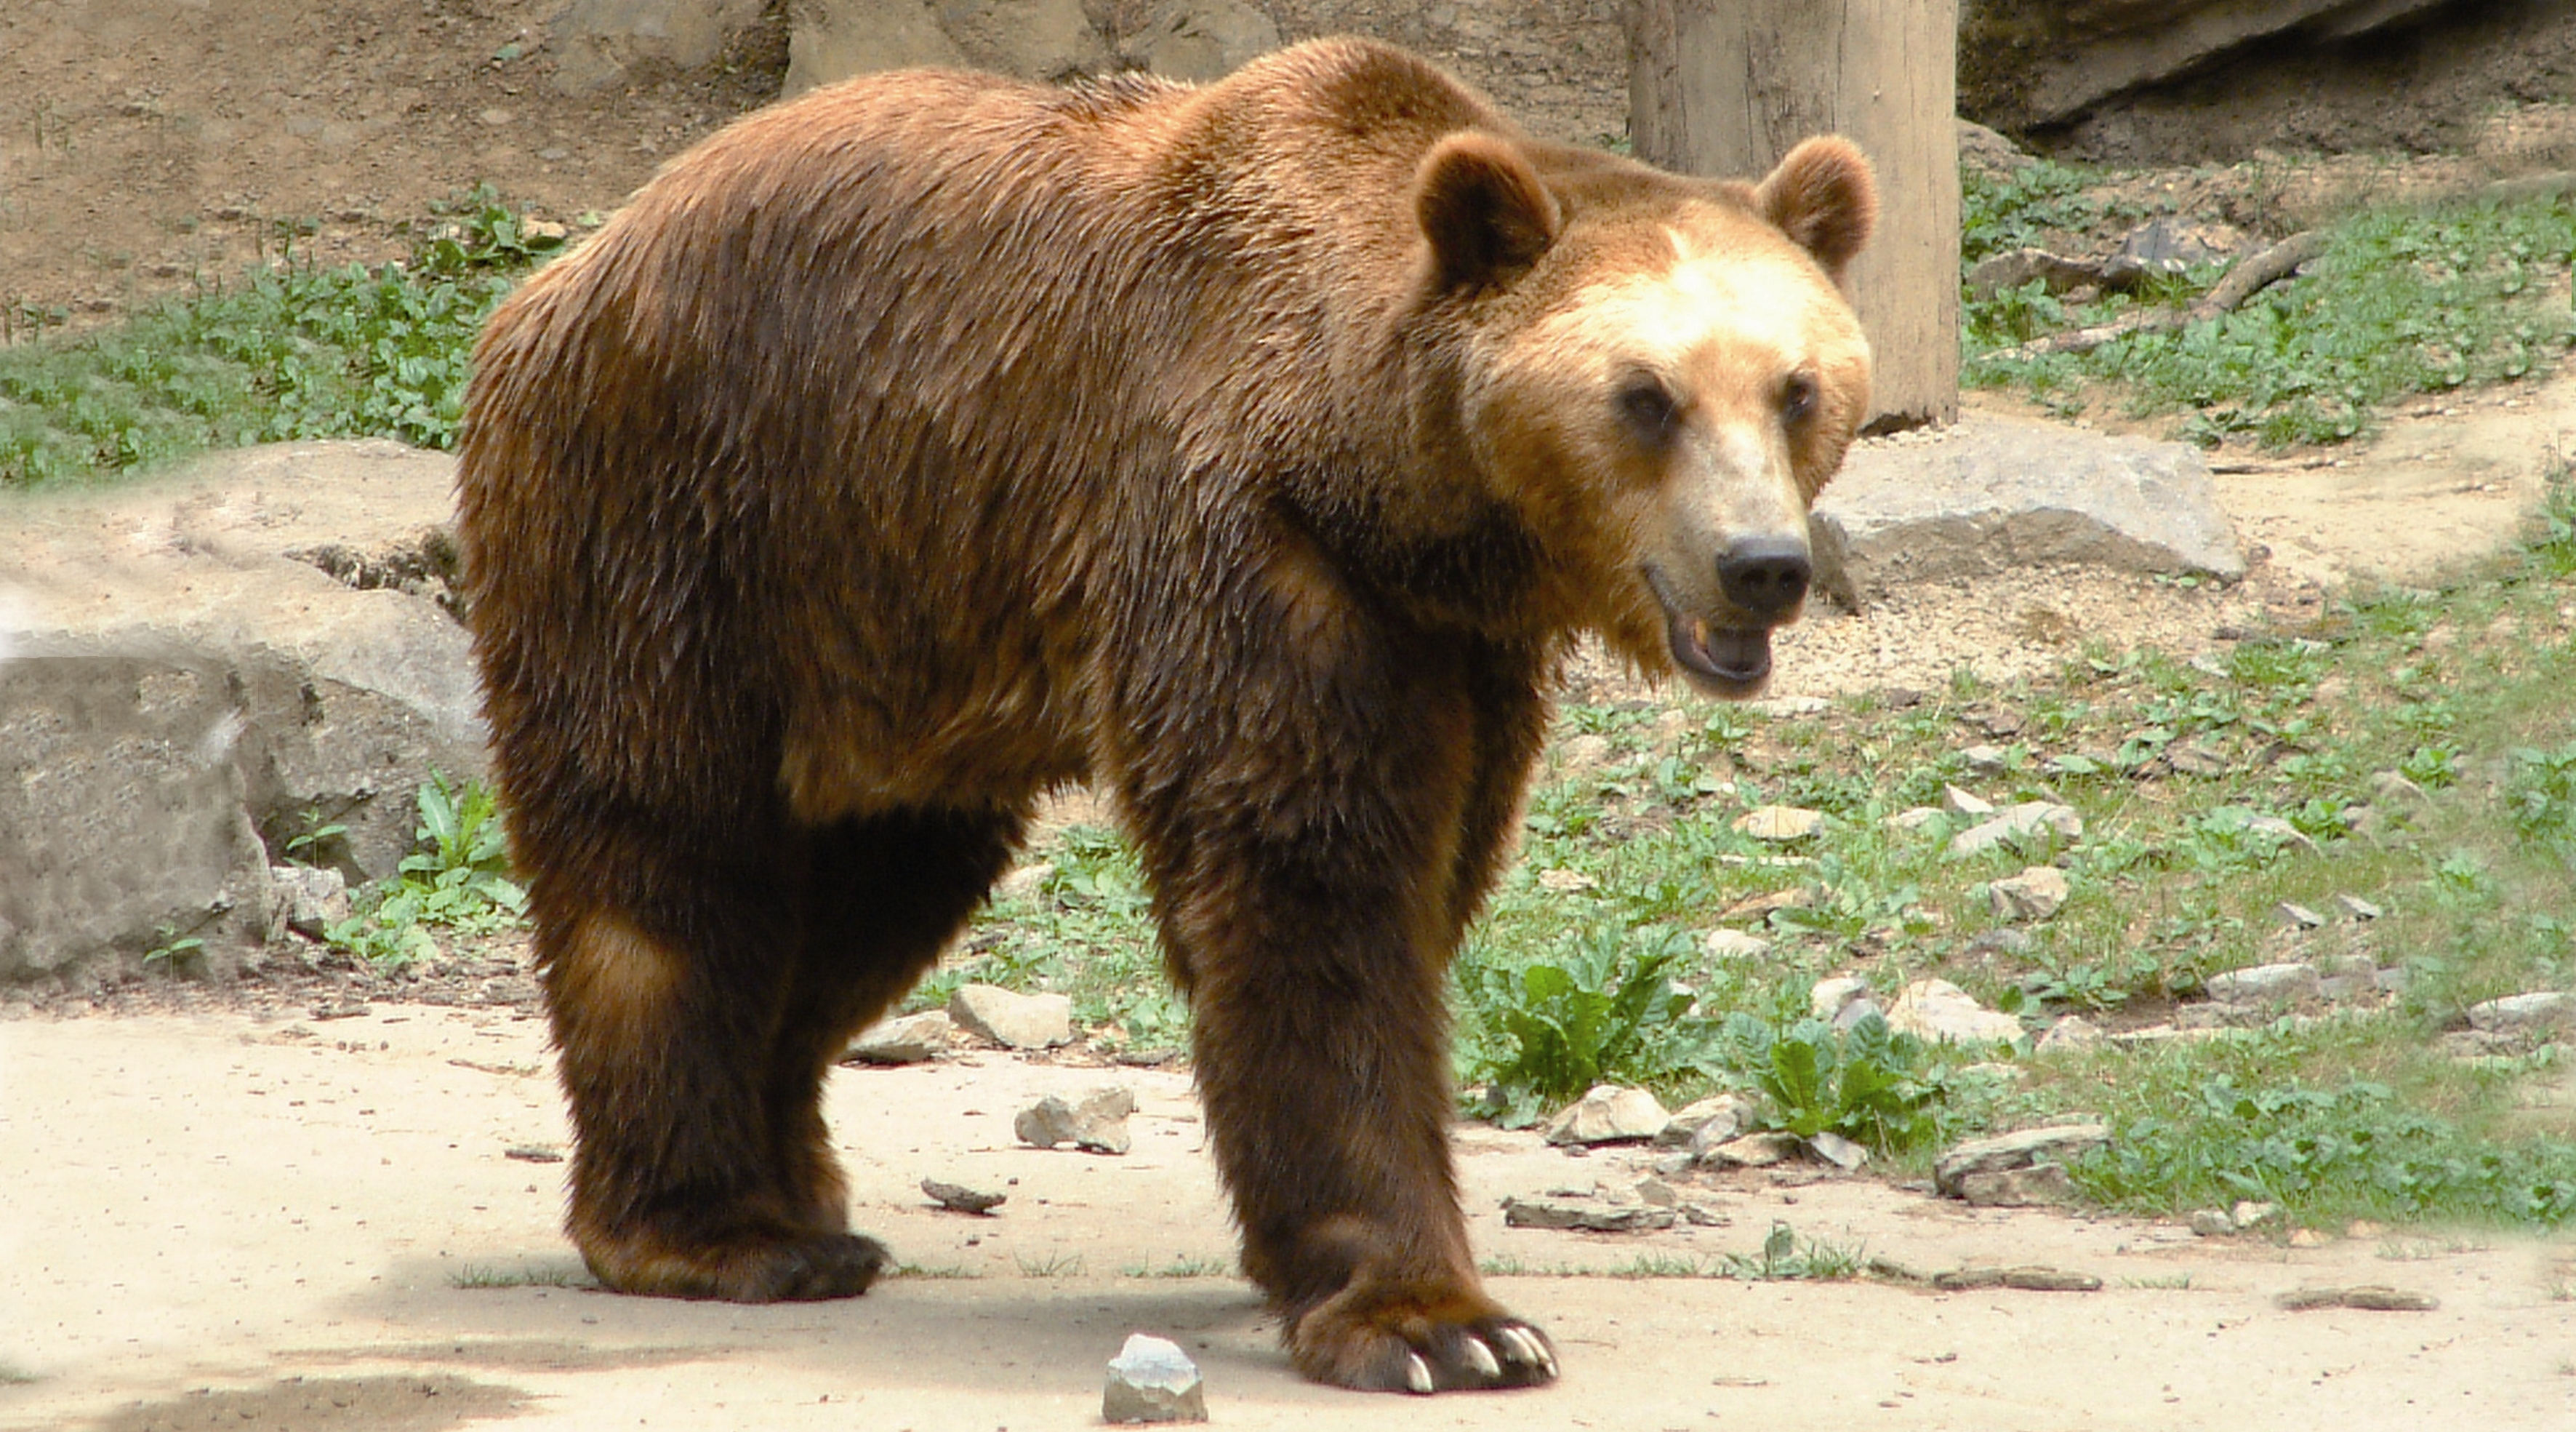 the image of a bear